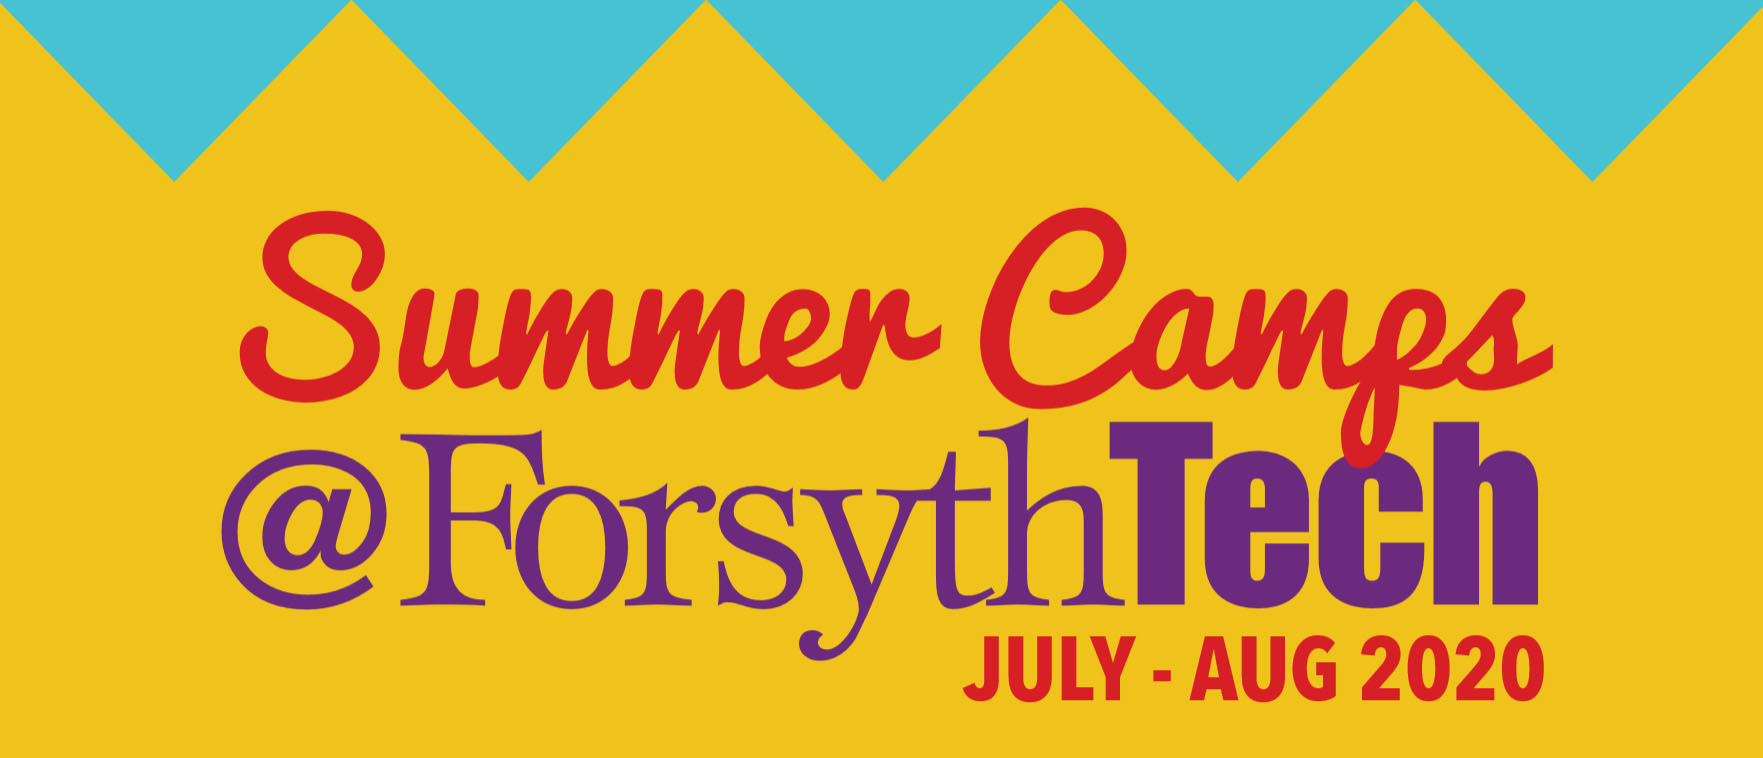 Summer Camps at Forsyth Tech Jul - August 2020